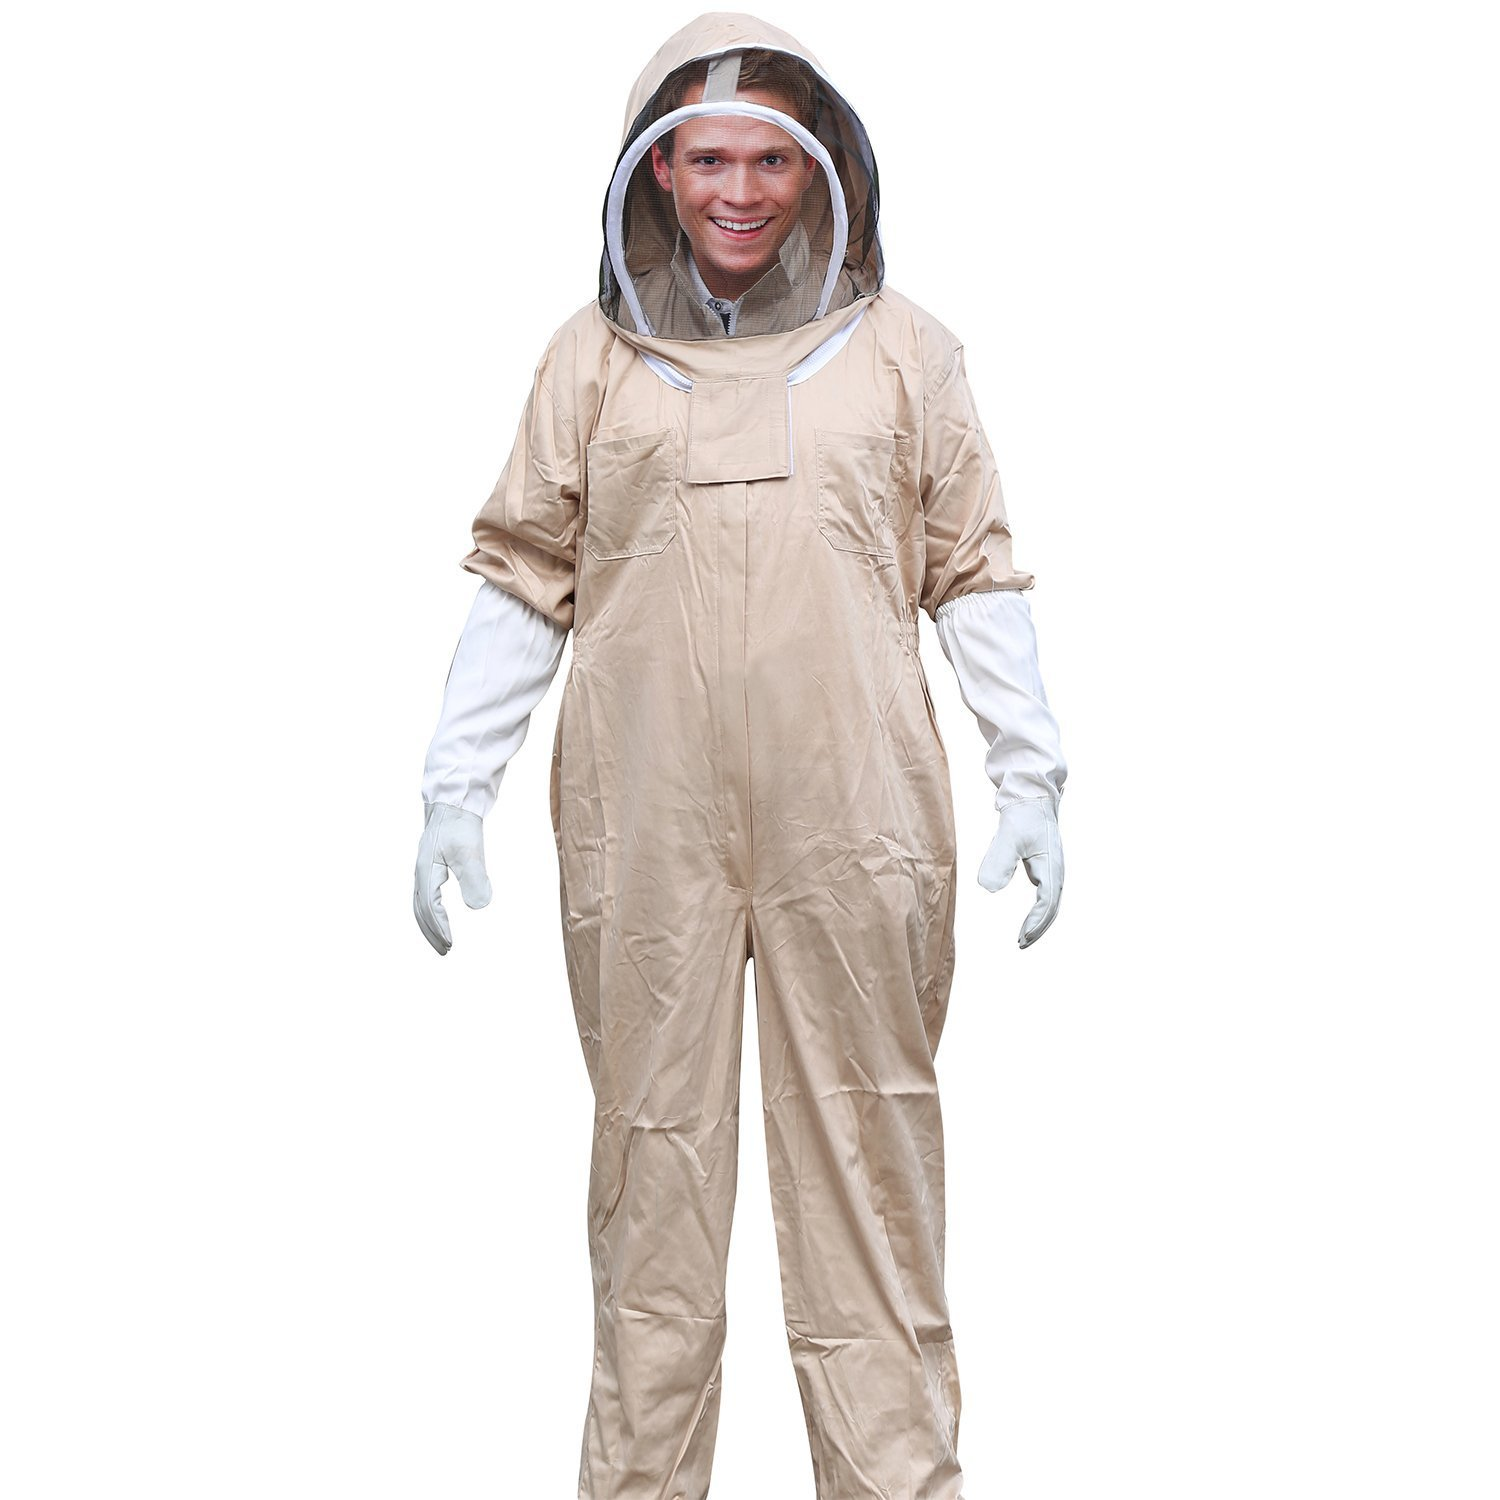 Aspectek - Apiarist Beekeeping Suit - Full Body with Self Supporting Veil and Fixable Strap Protection from Stings - Medium (M) Size TRTD1263